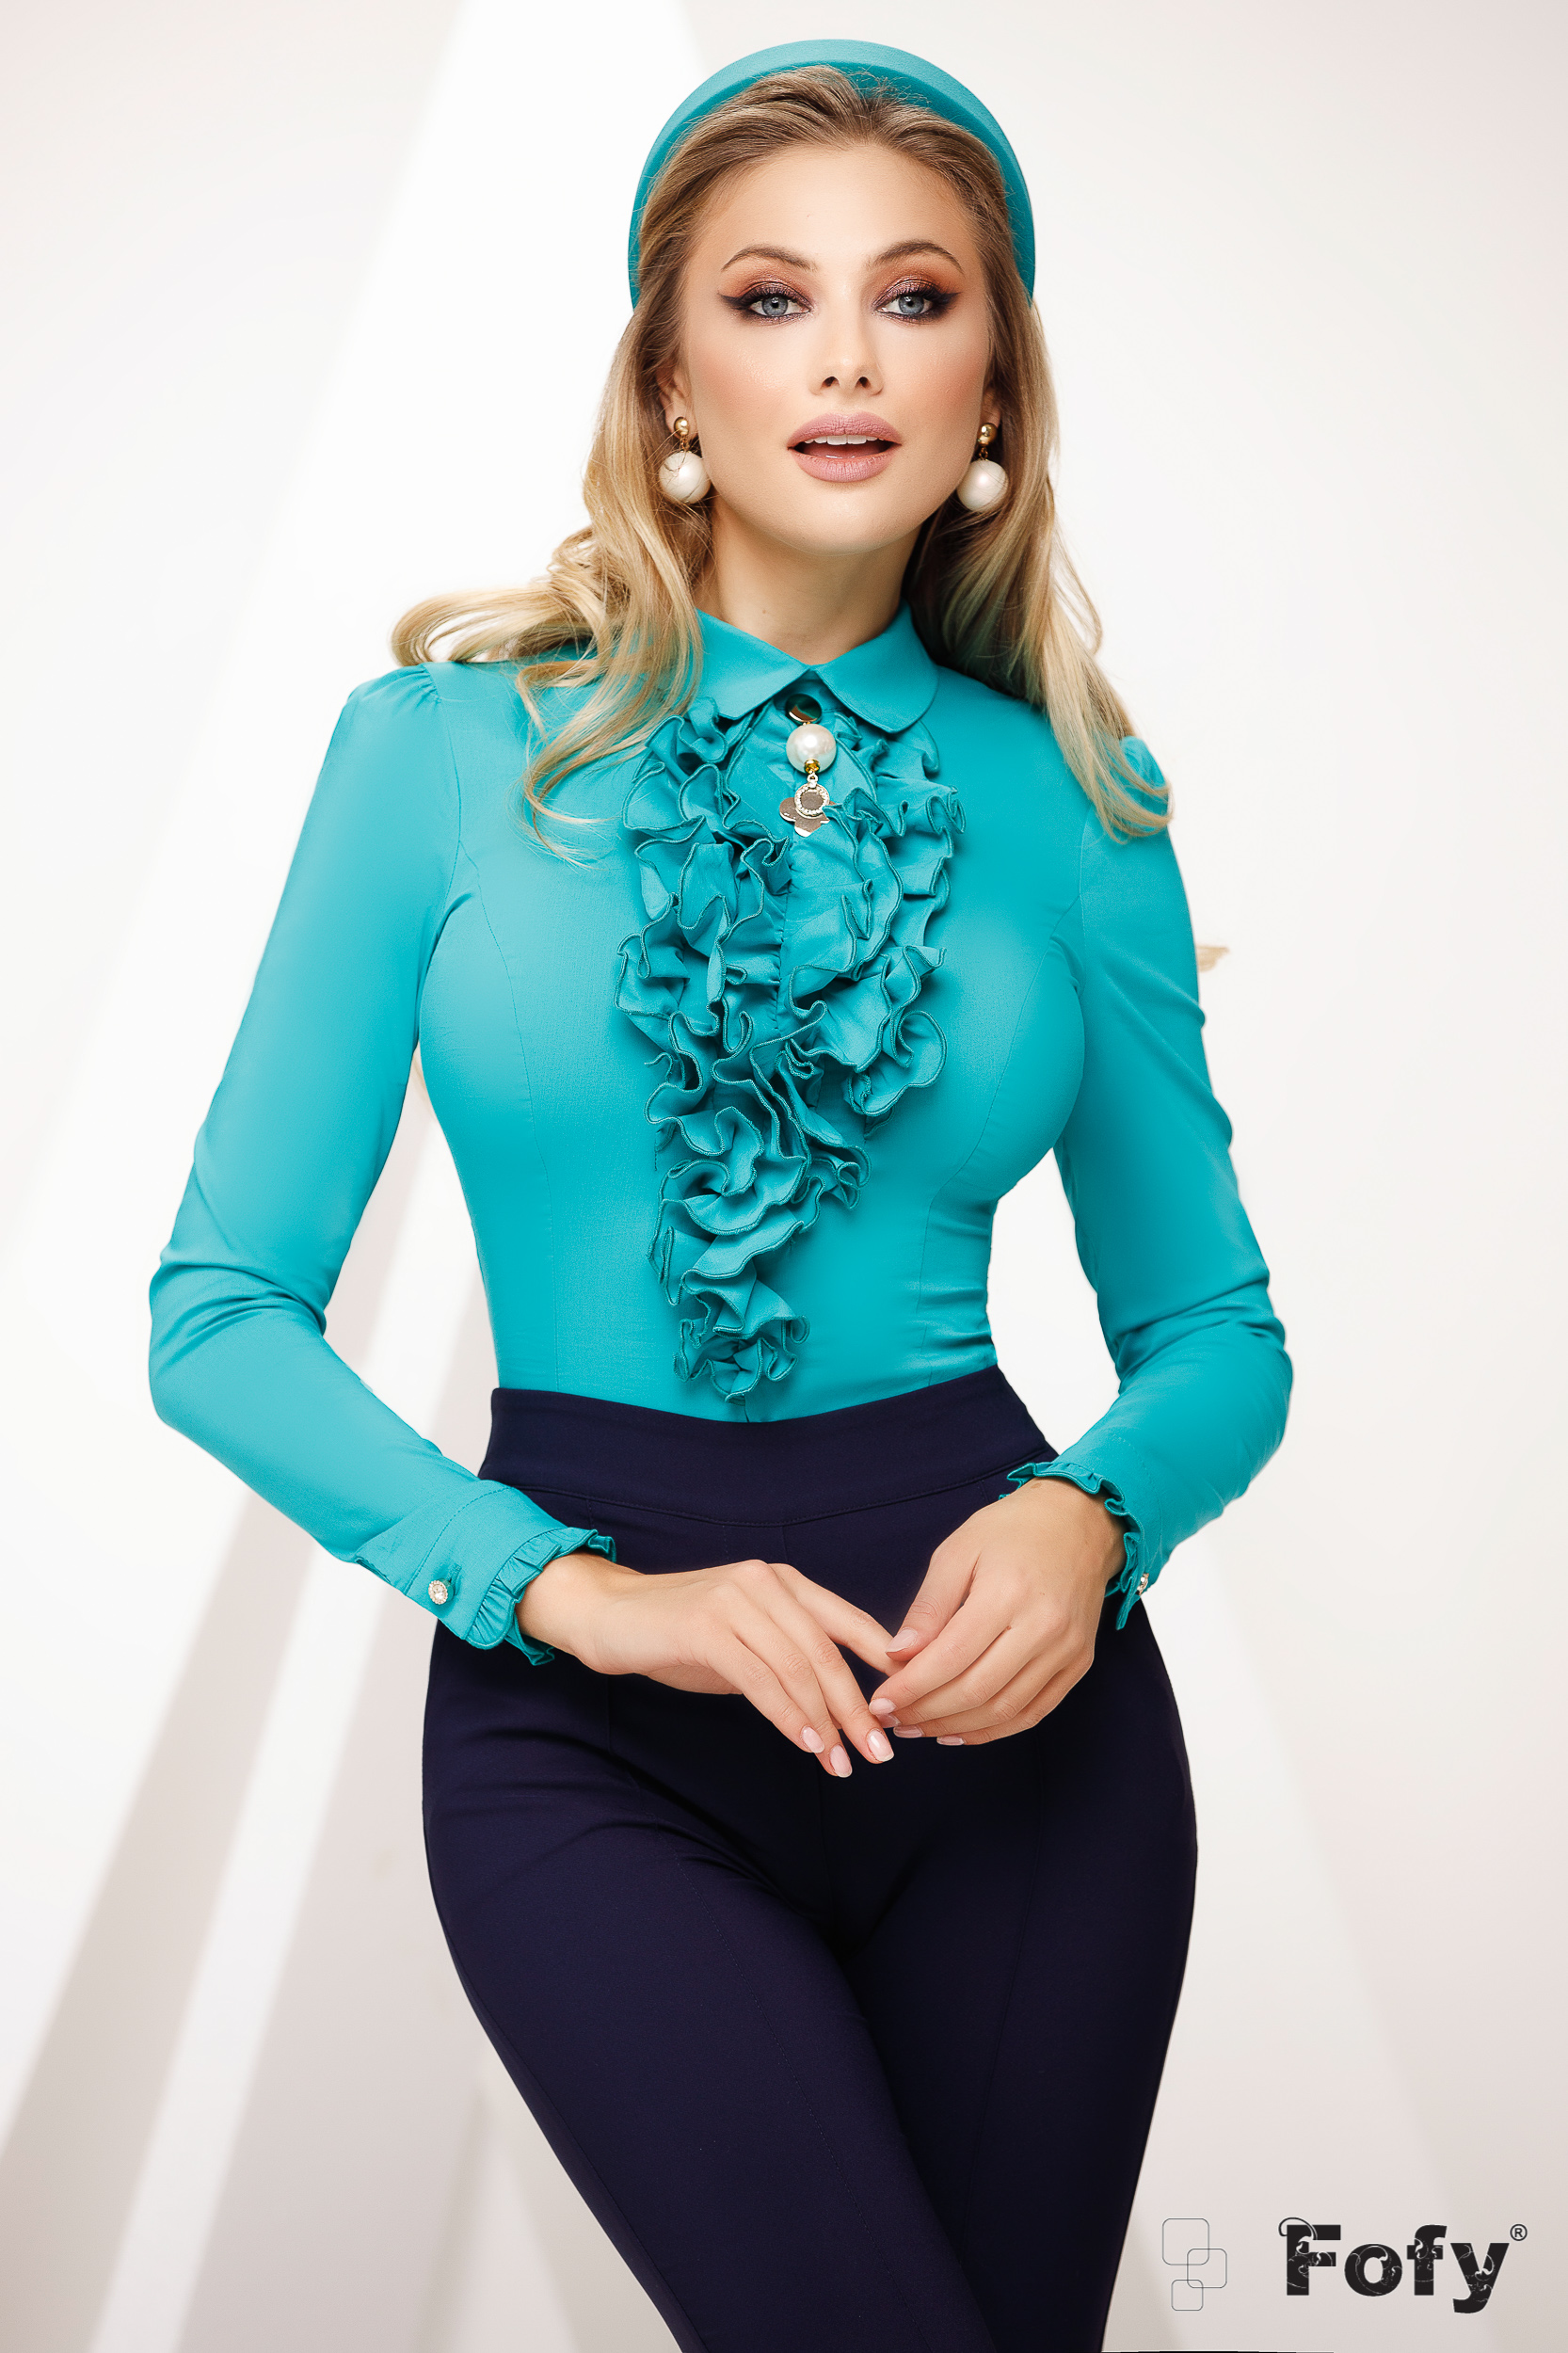 Women`s shirt green office with collar accessorized with breastpin with ruffle details